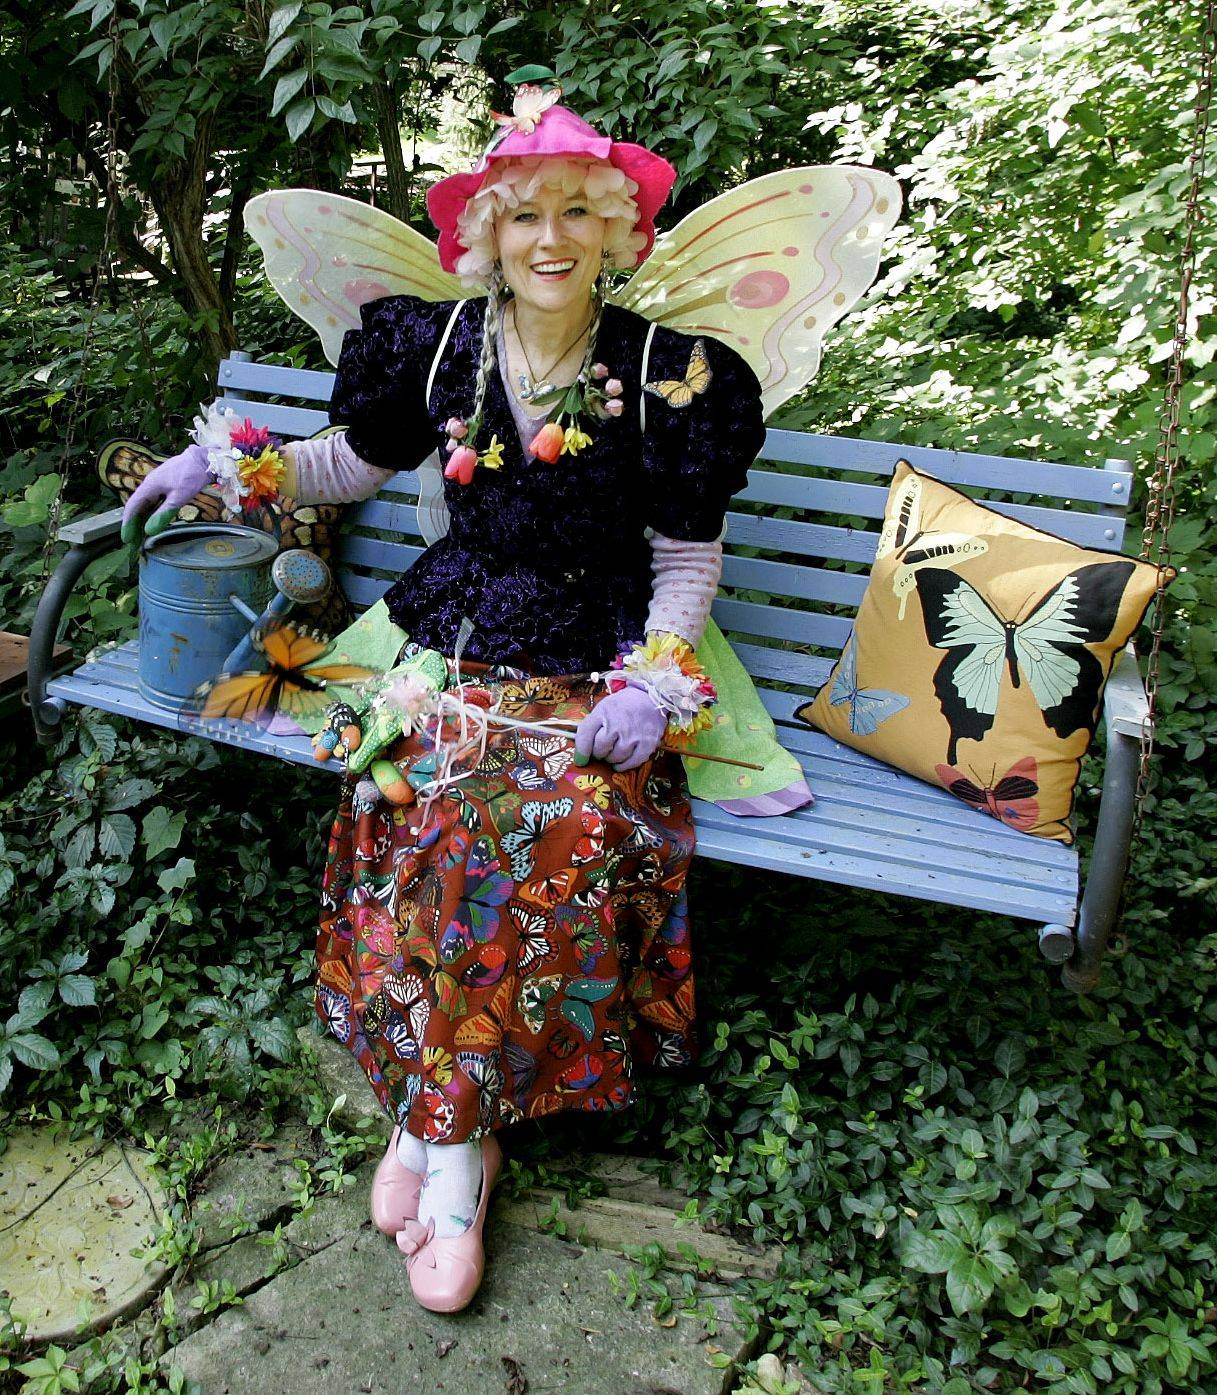 Professional storyteller Carolyn Finzer, dressed as Flora the Flower Fairy, said she finds most materials for her homemade costumes at Goodwill and thrift stores.